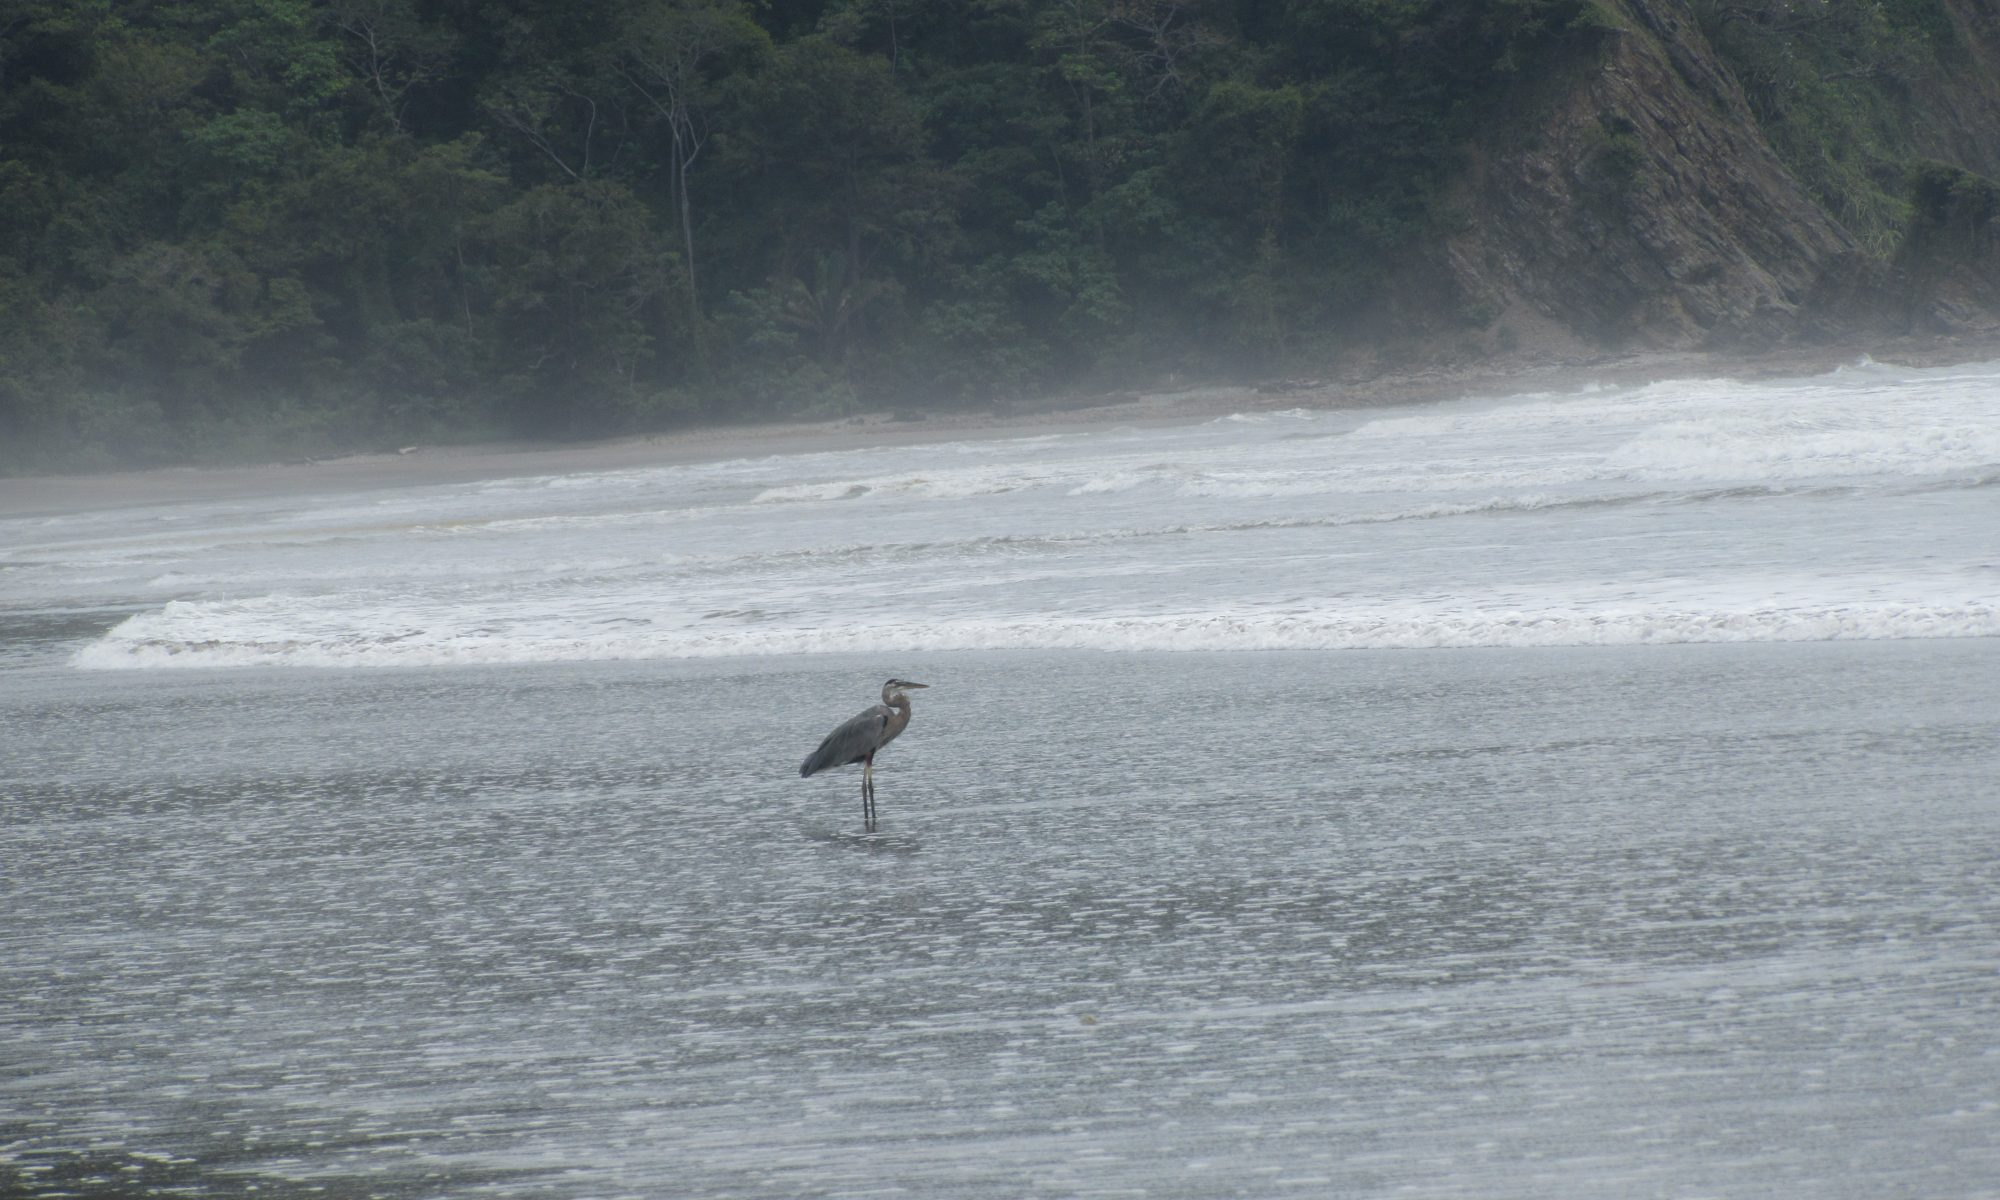 Get a Reservation for Hotel Paraíso del Cocodrilo and watch exotically birds at the beach